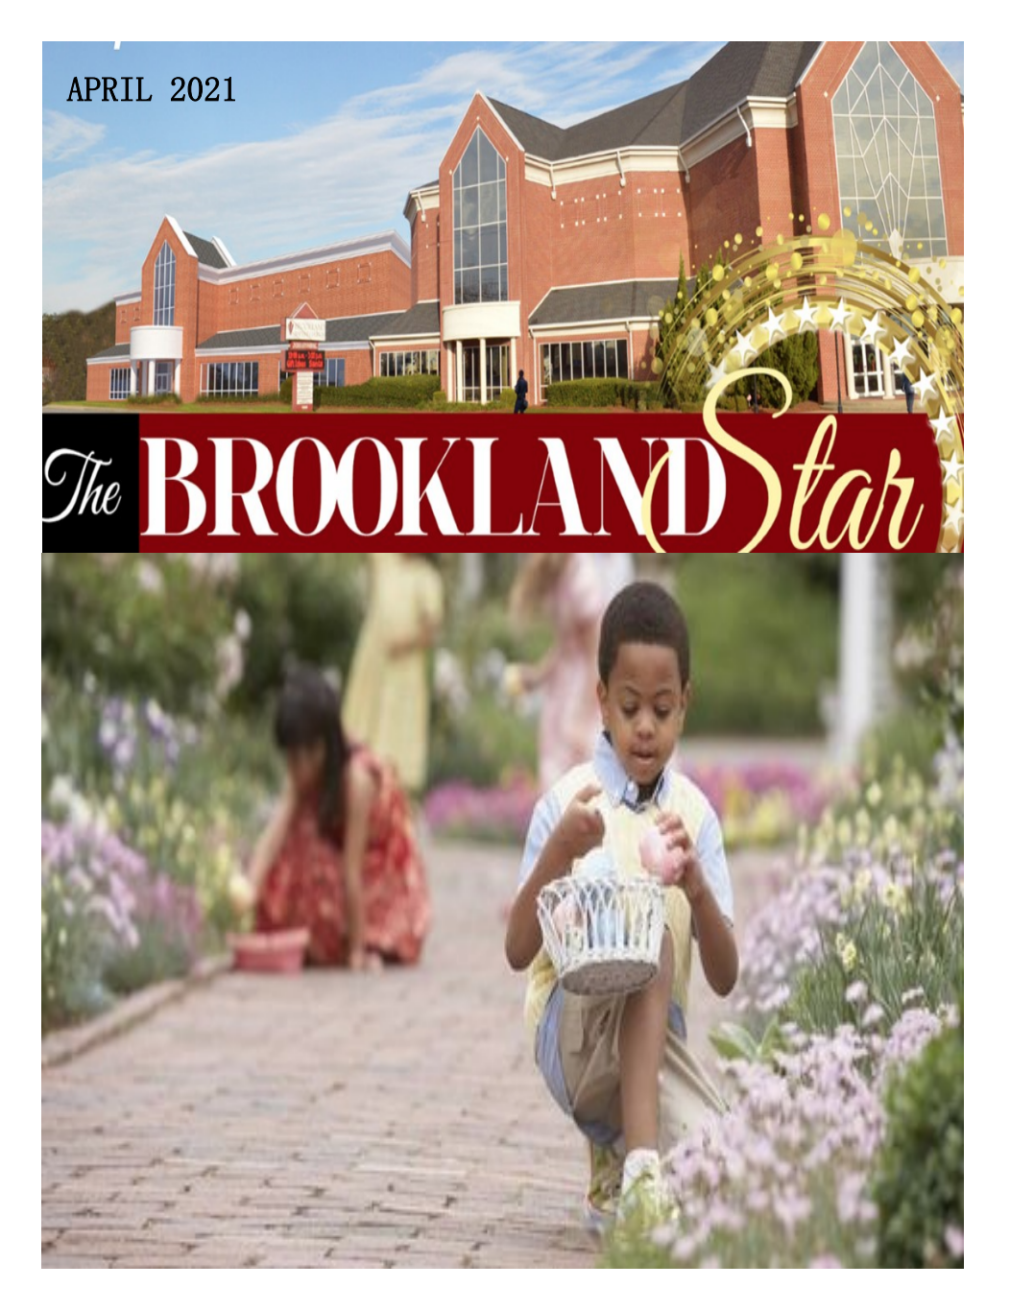 The Brookland Star April 2021 Edition